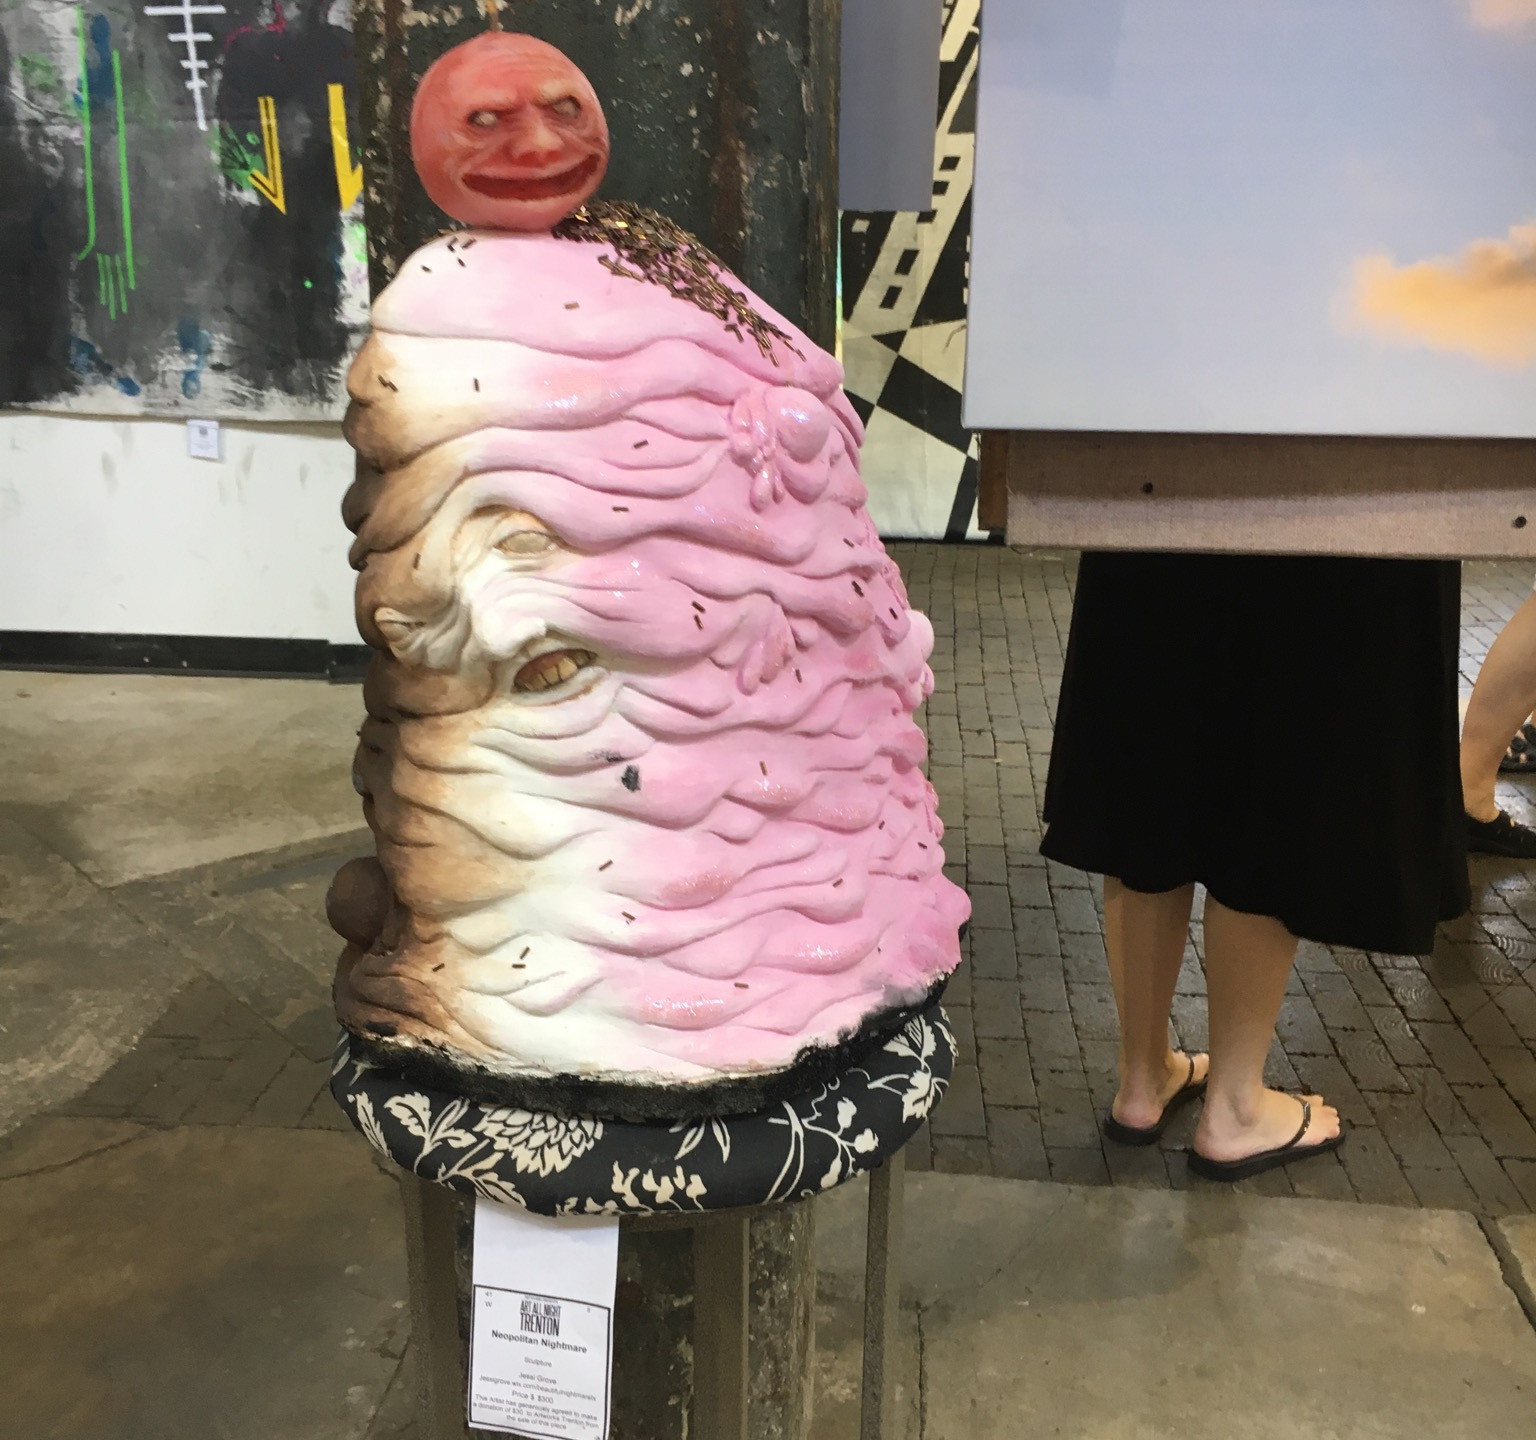 Umm, Neapolitan Ice Cream sculpture is melting in the heat, figuratively at Art All Night 2016